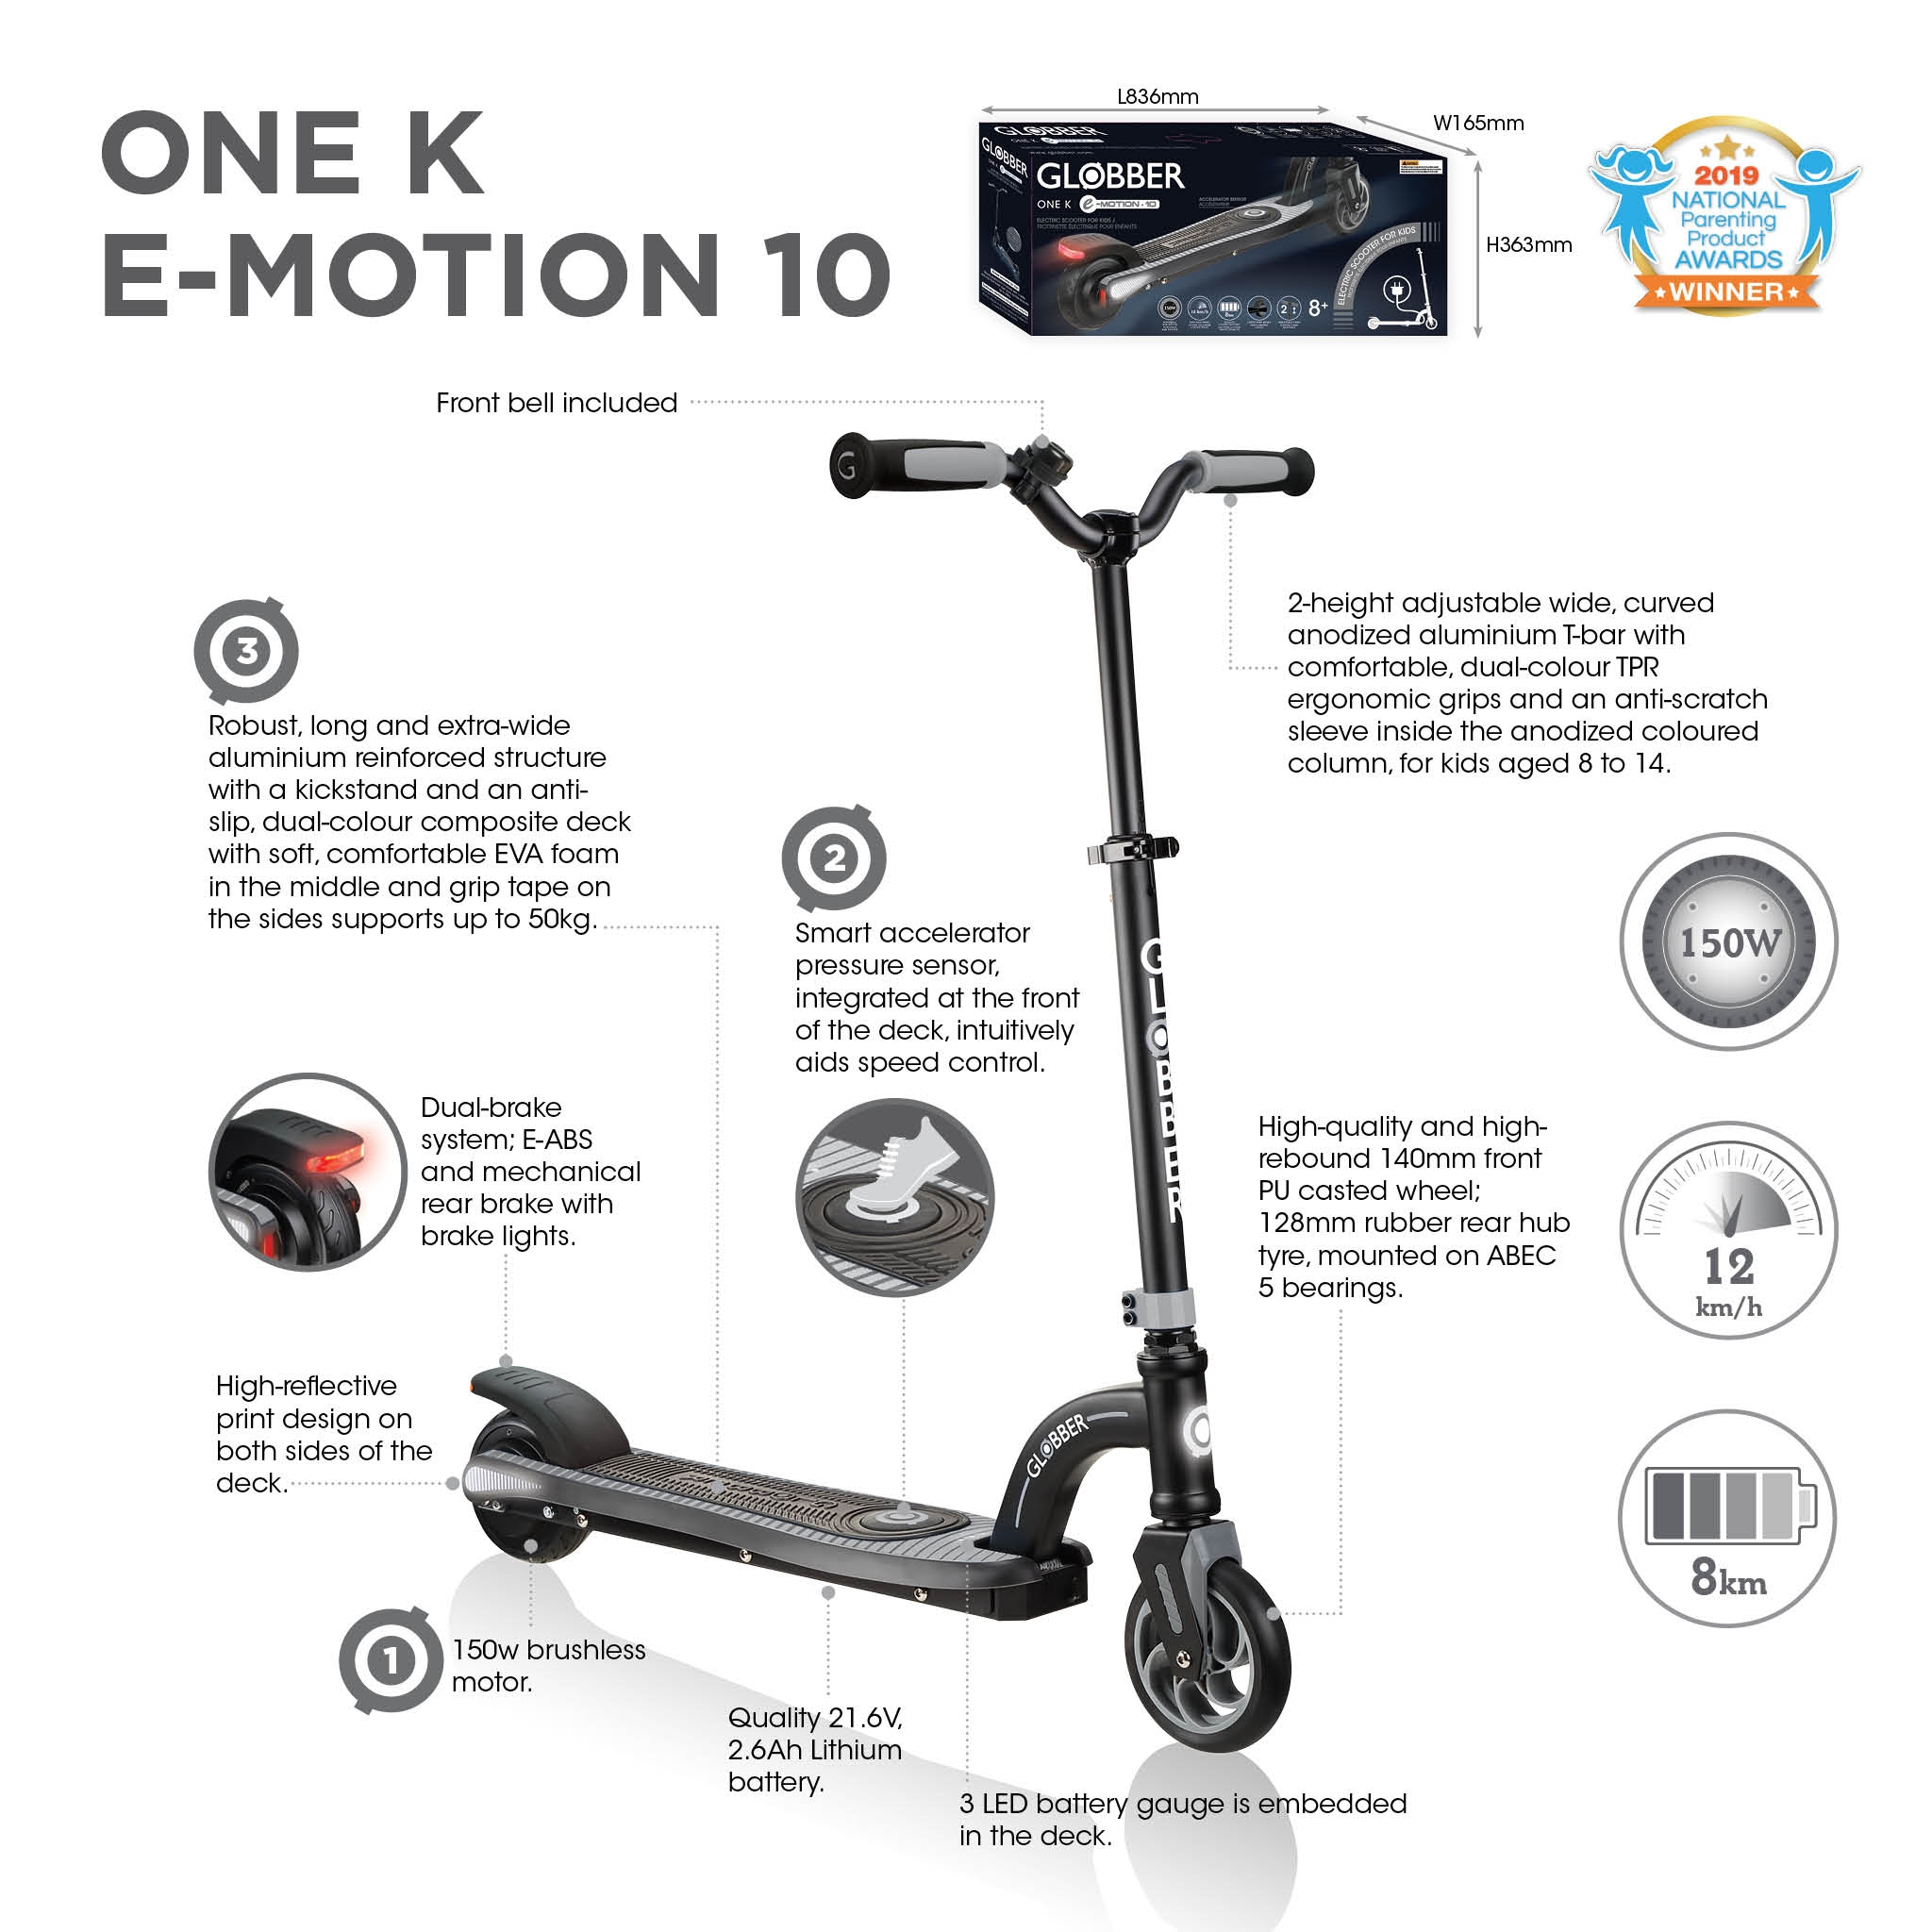 Globber-ONE-K-E-MOTION-10-electric-scooter-for-kids 2